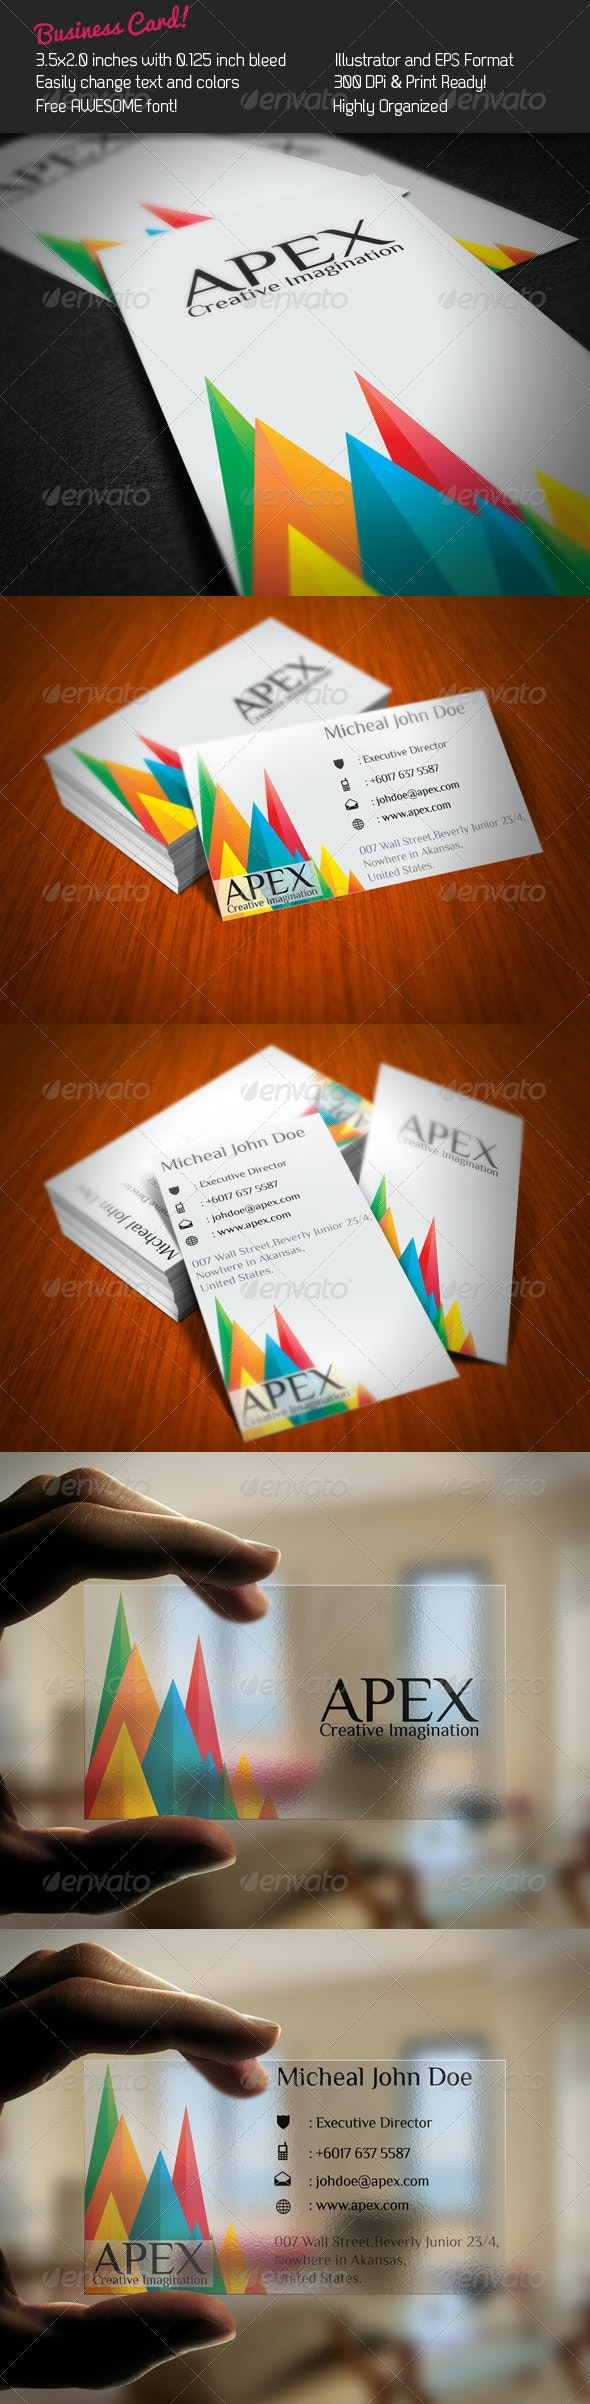 Apex Business Card - Creative Business Cards